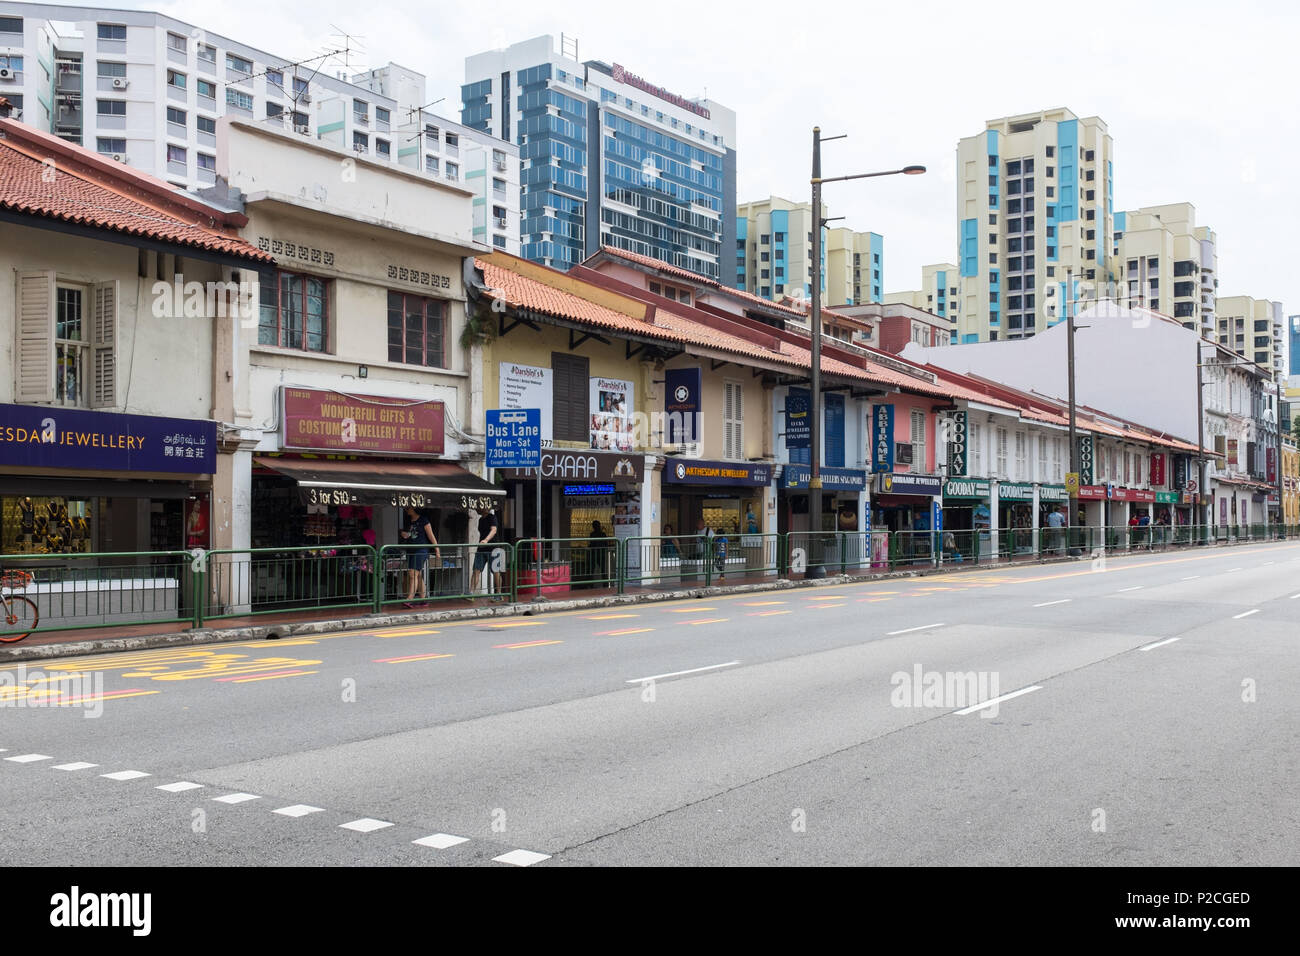 Serangoon Road in the Little India district of Singapore which is known for indian restaurants,malls, jewellery shops and tailors. - Stock Image